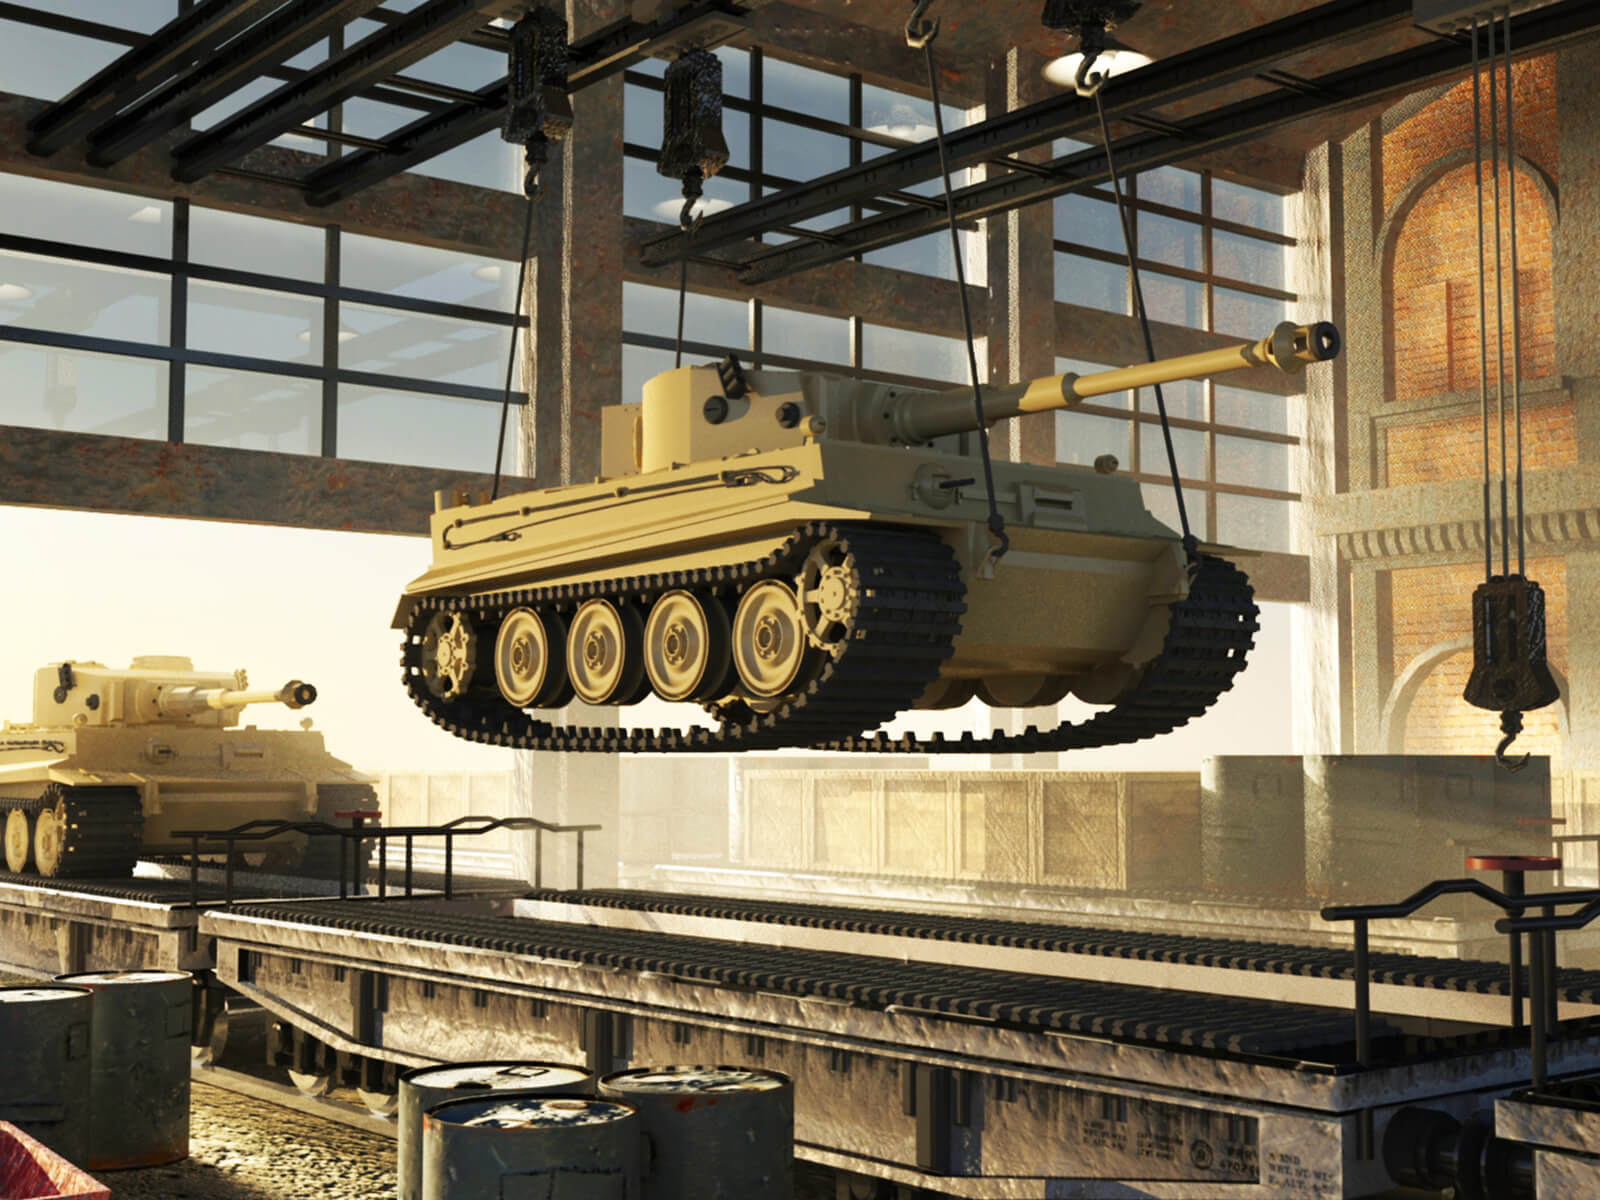 computer-generated 3d model of a tank suspended above a track in a warehouse-type building